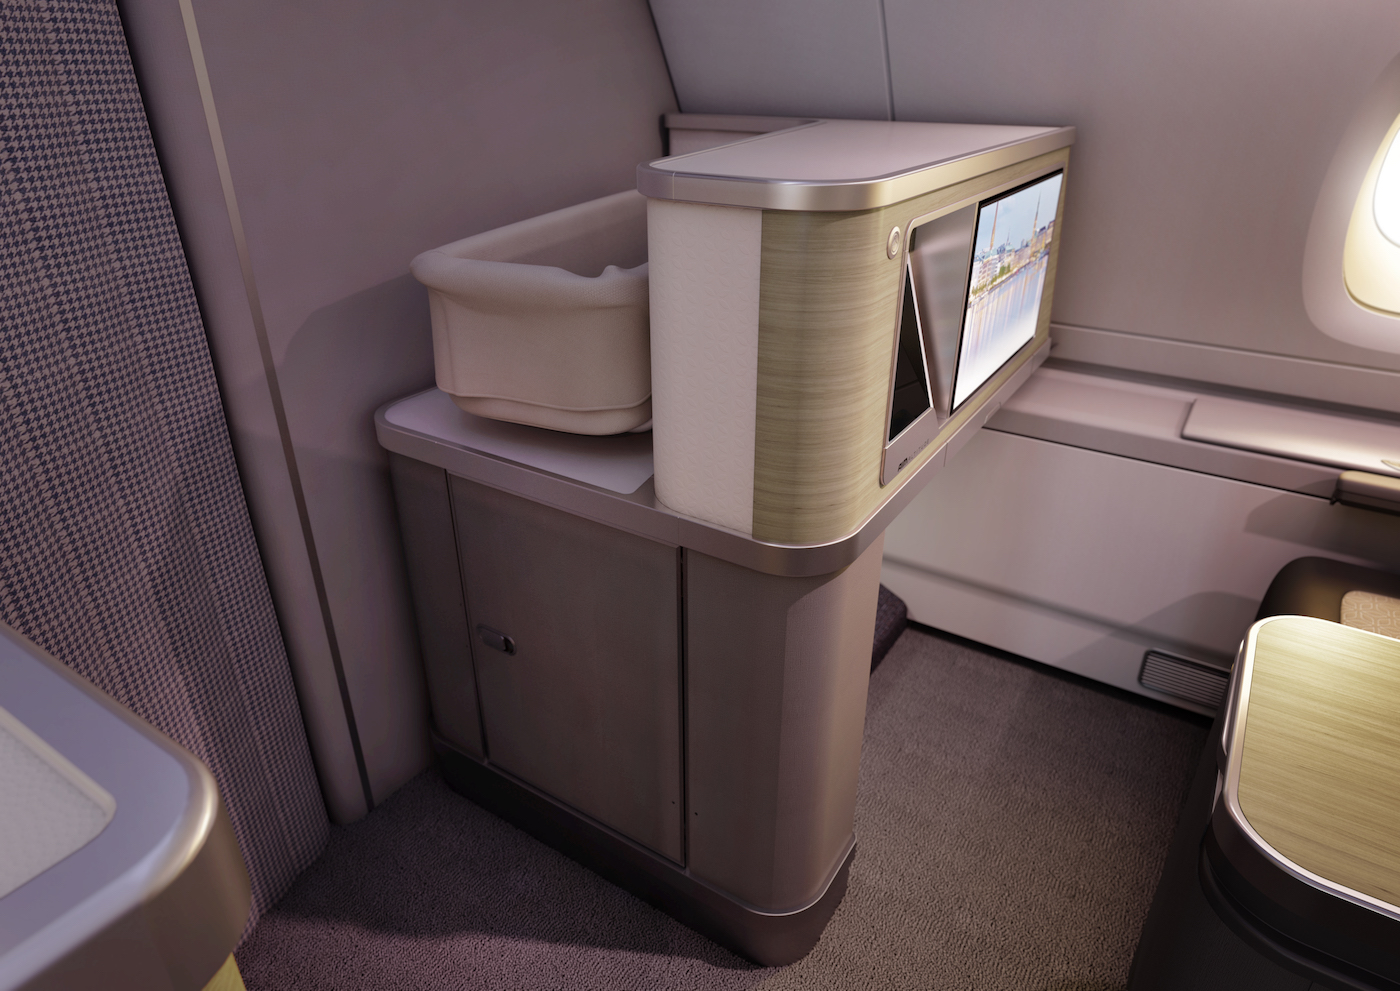 AIM Altitude's half-height monument has provision for a baby bassinet